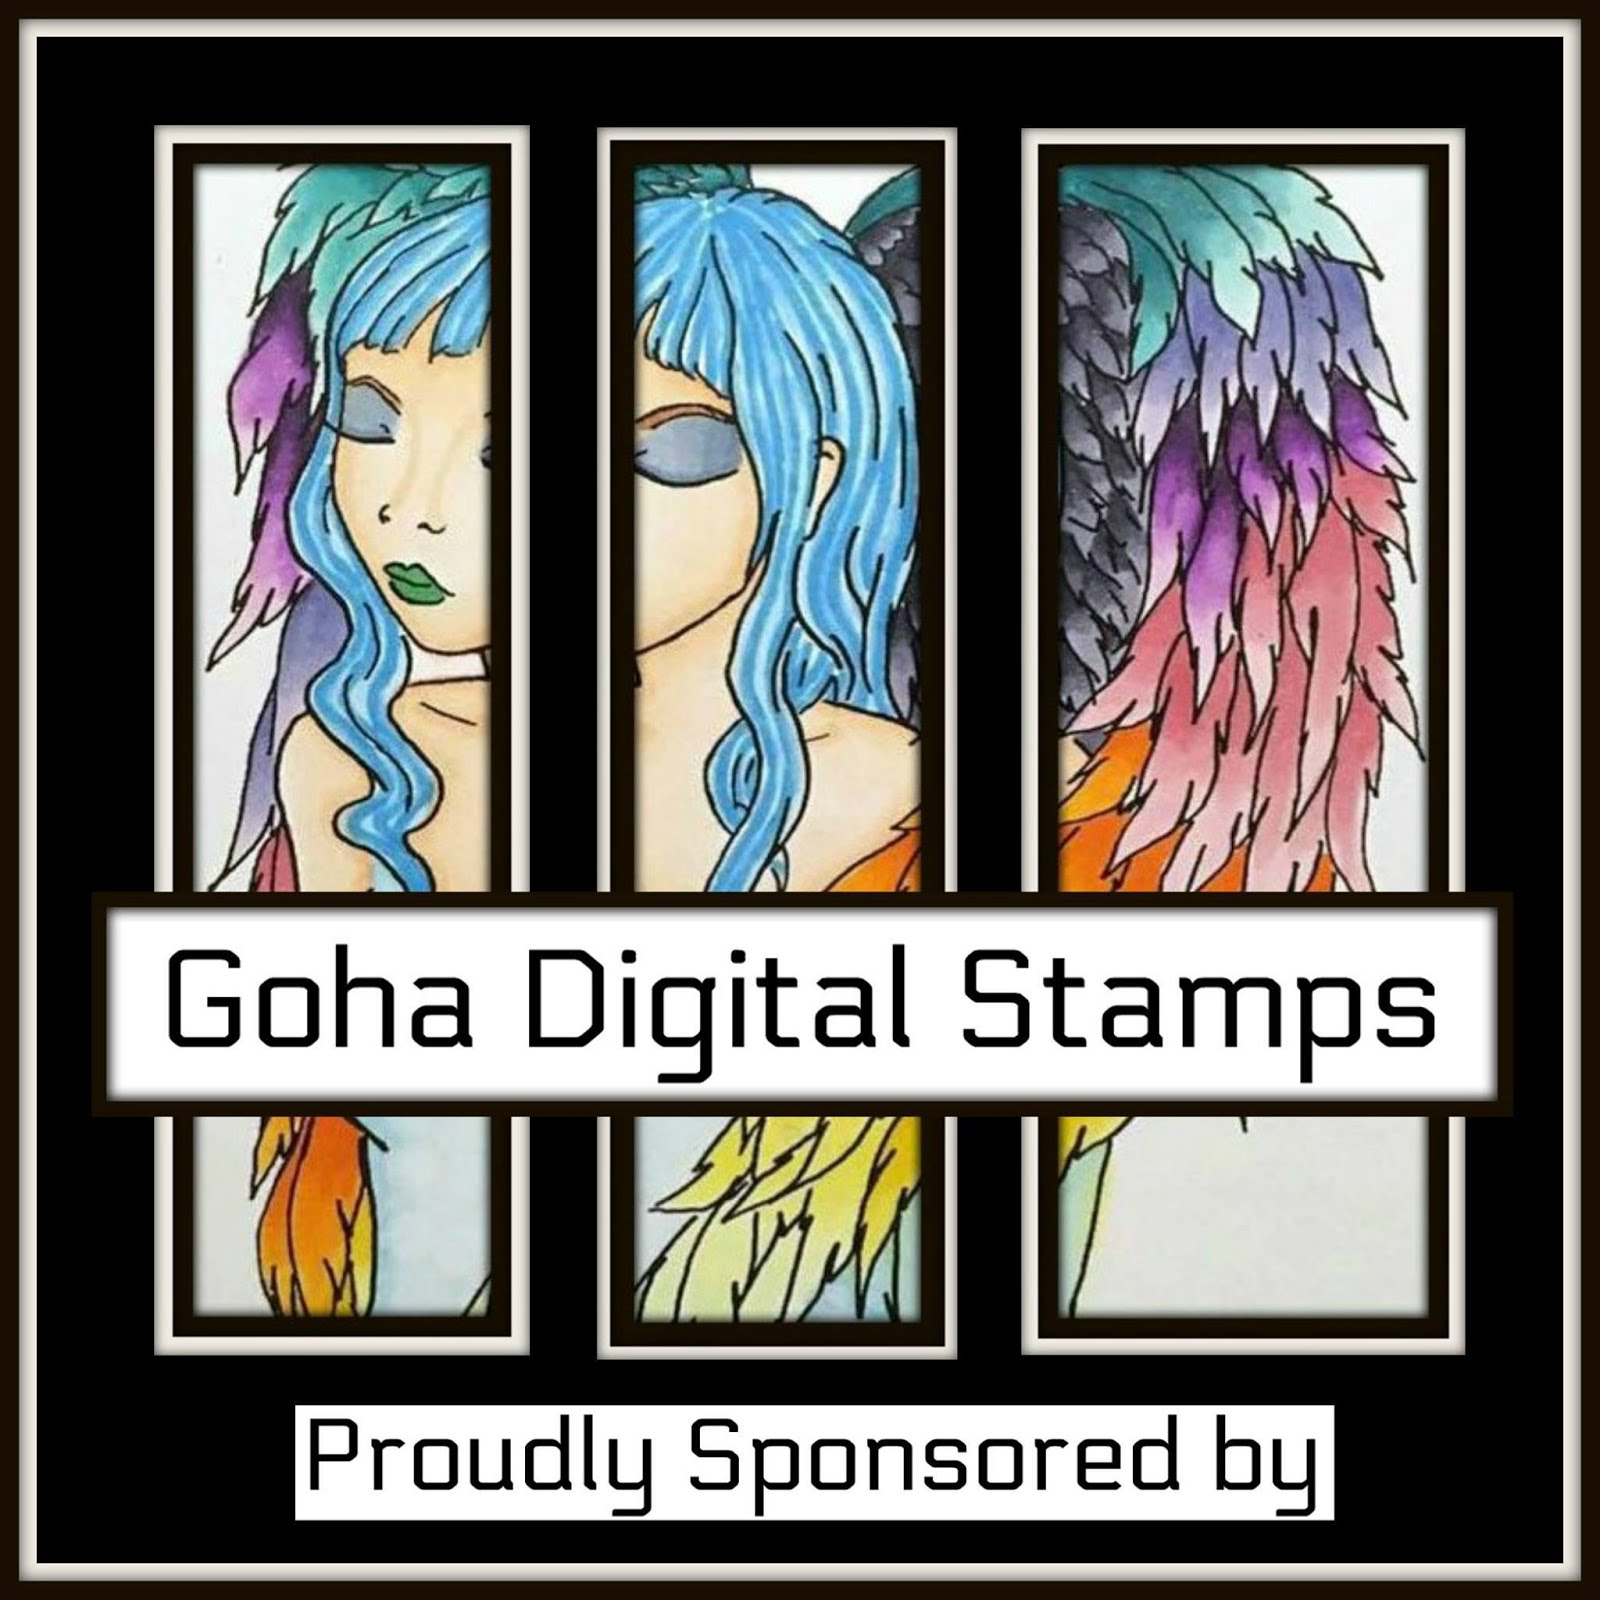 Goha Digital Stamps